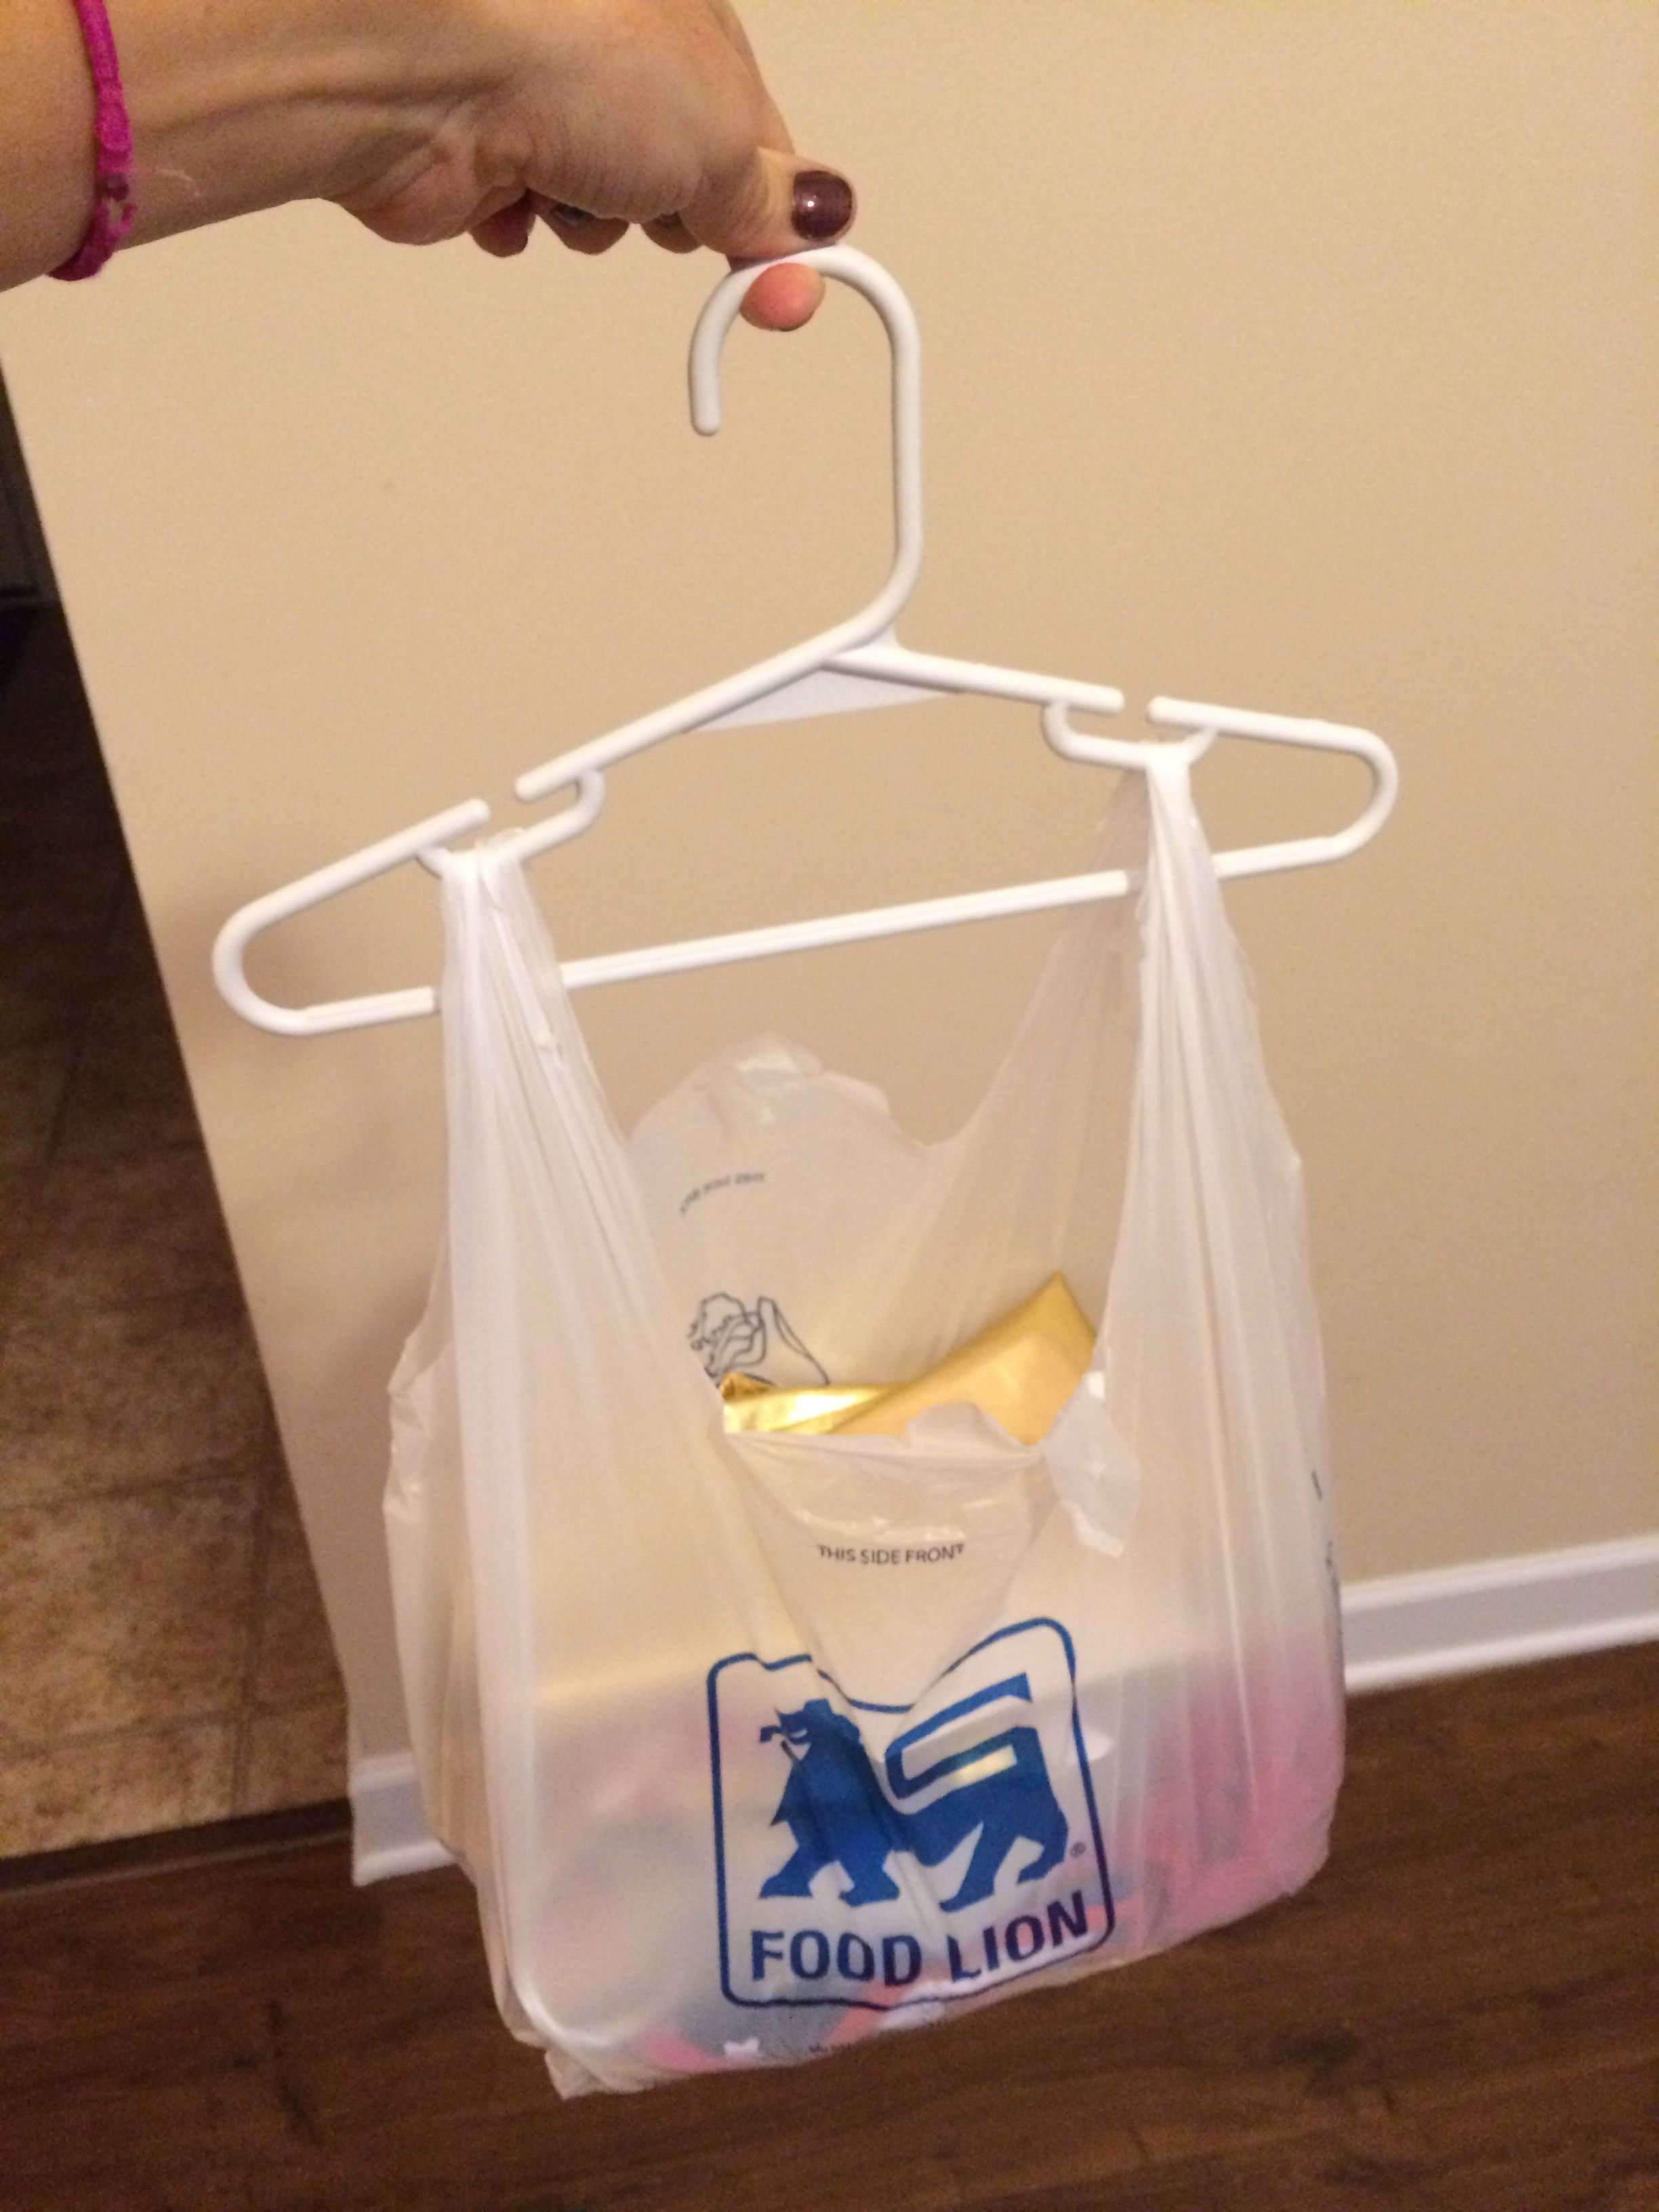 Craft projects stored in a plastic bag on a hanger ...